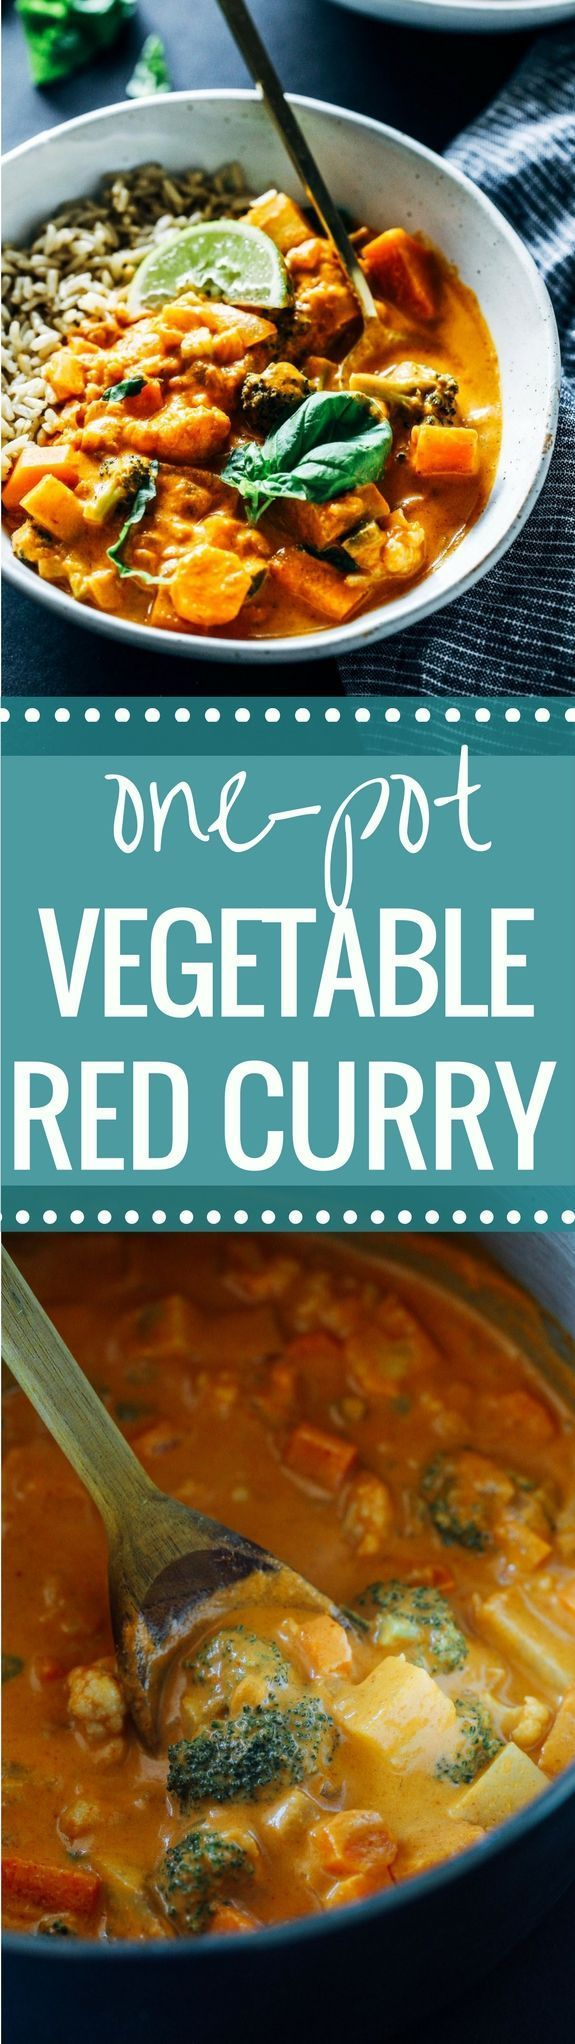 343 best Curry! images on Pinterest | Indian cuisine, Healthy ...